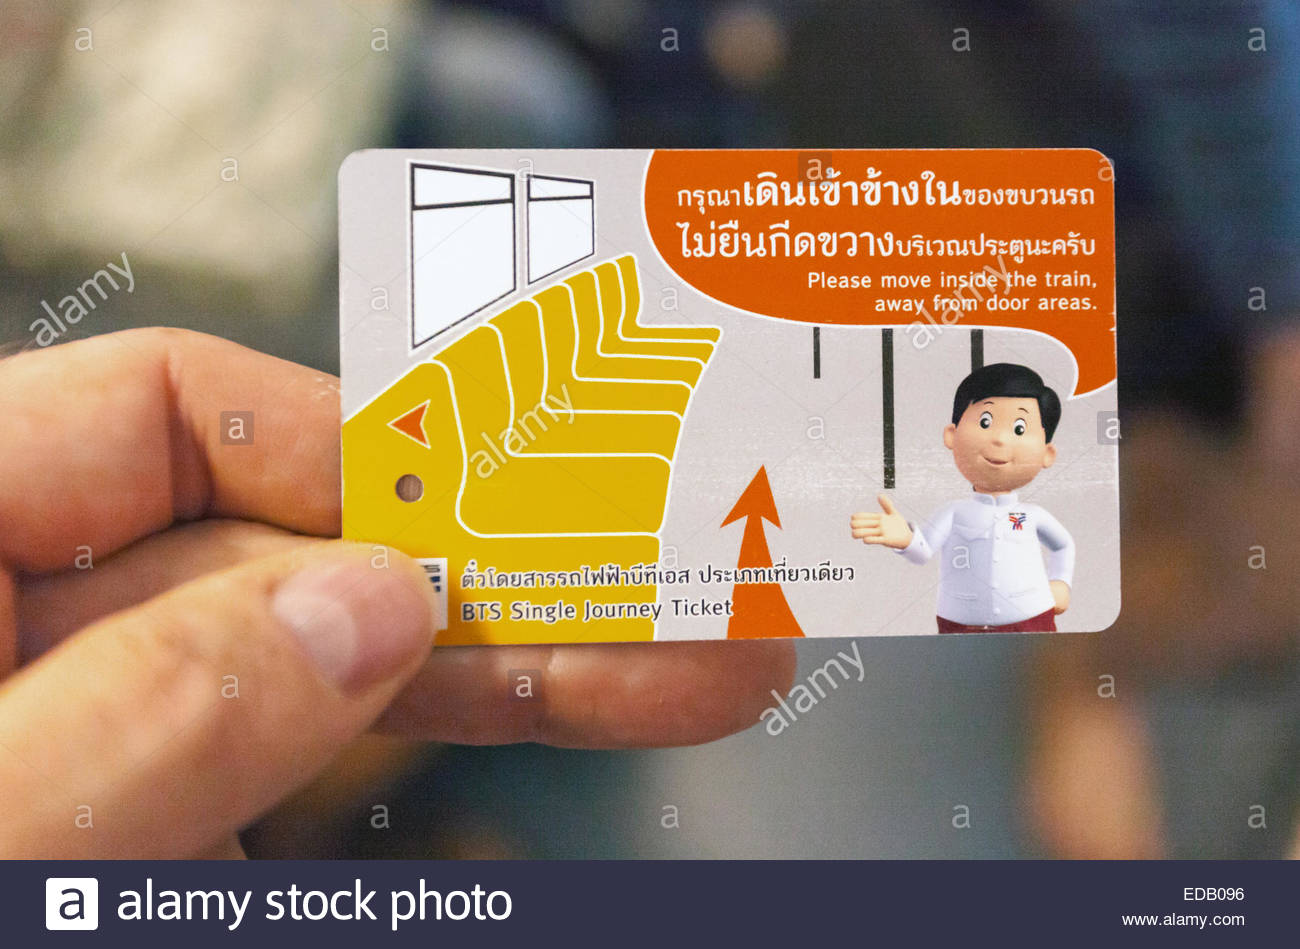 Bangkok mass transit single journey ticket - Stock Image